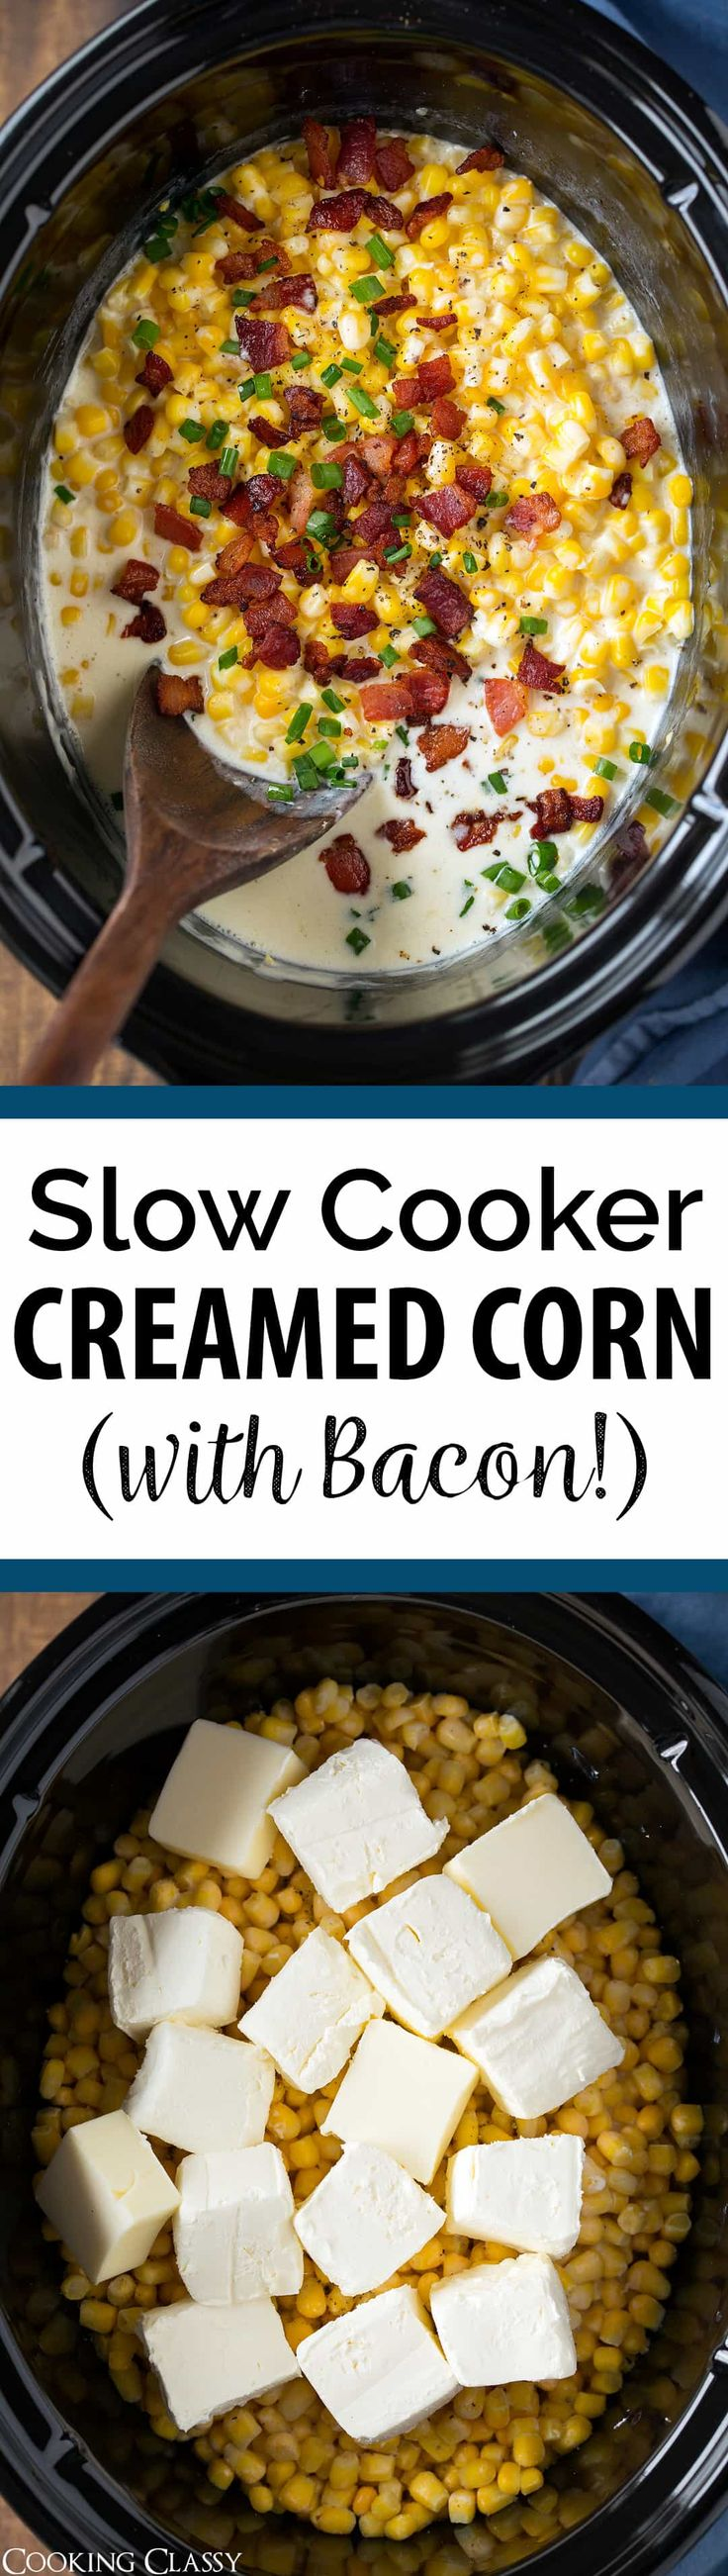 Slow Cooker Creamed Corn (with Bacon!) - The best creamed corn recipe! So easy to make and made extra delicious with bacon! A comforting side dish that's perfect for holidays. via @cookingclassy